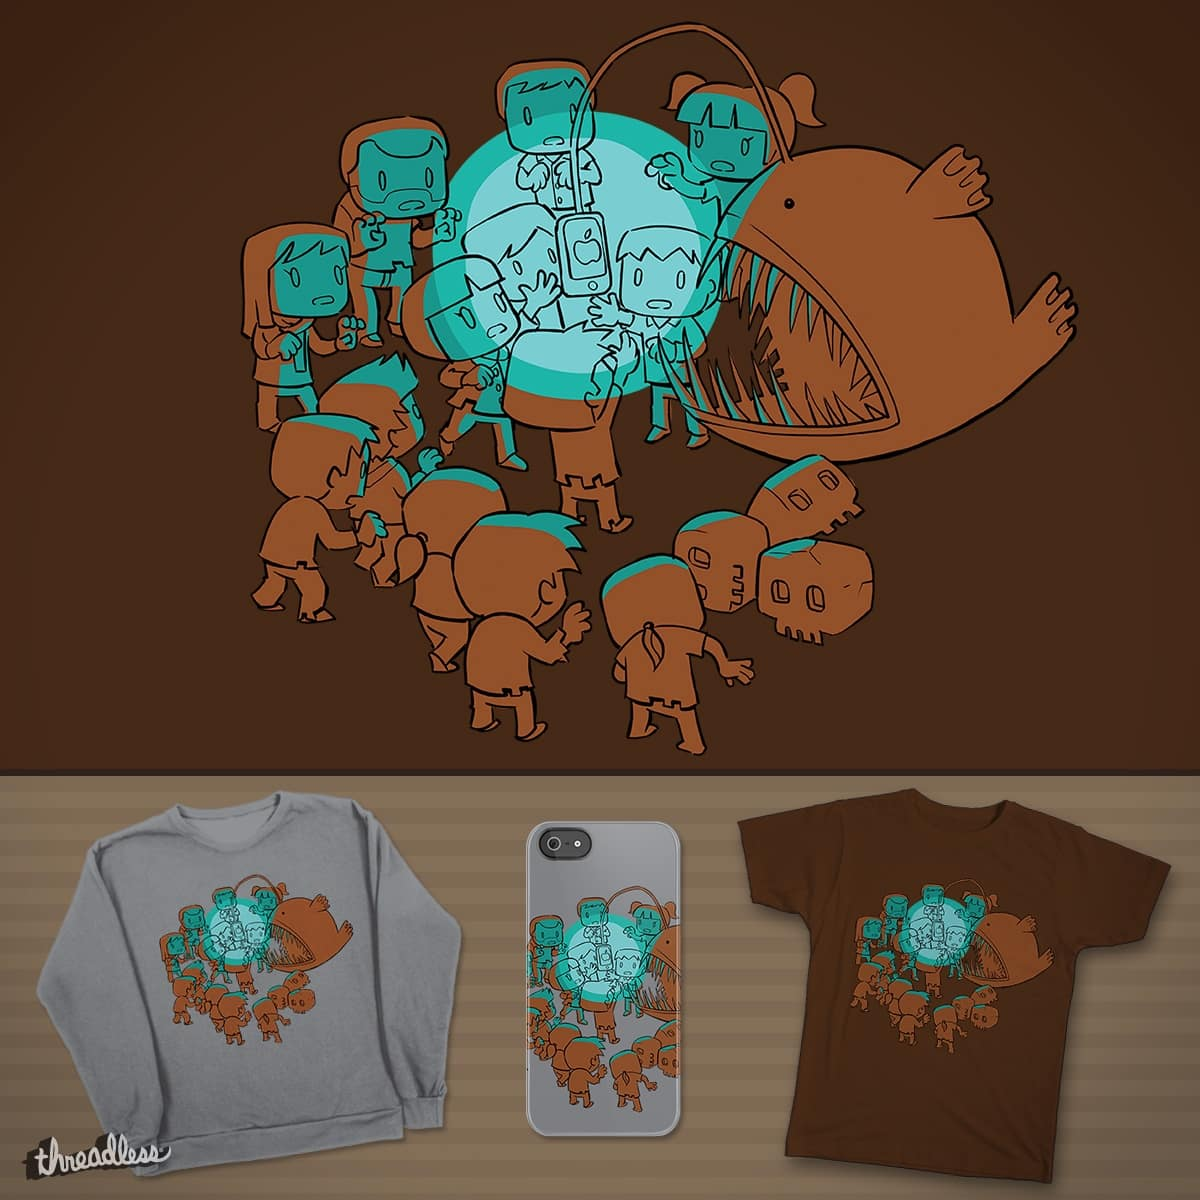 Luminous Lure by itiohs on Threadless